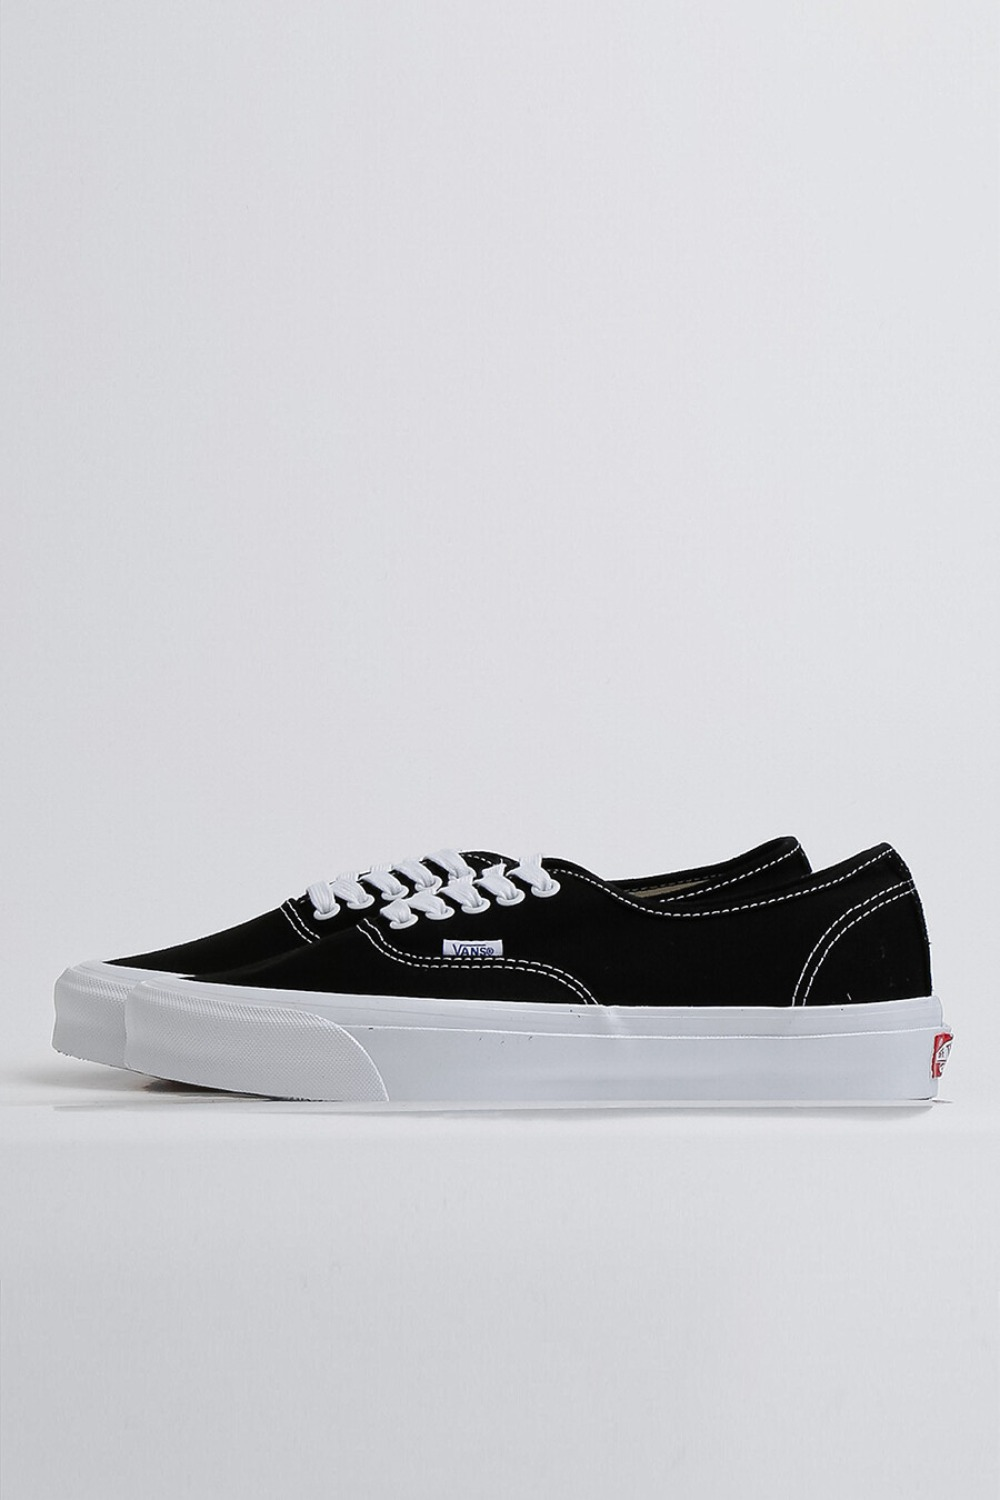 OG AUTHENTIC LX(CANVAS)BLACK/WHITE